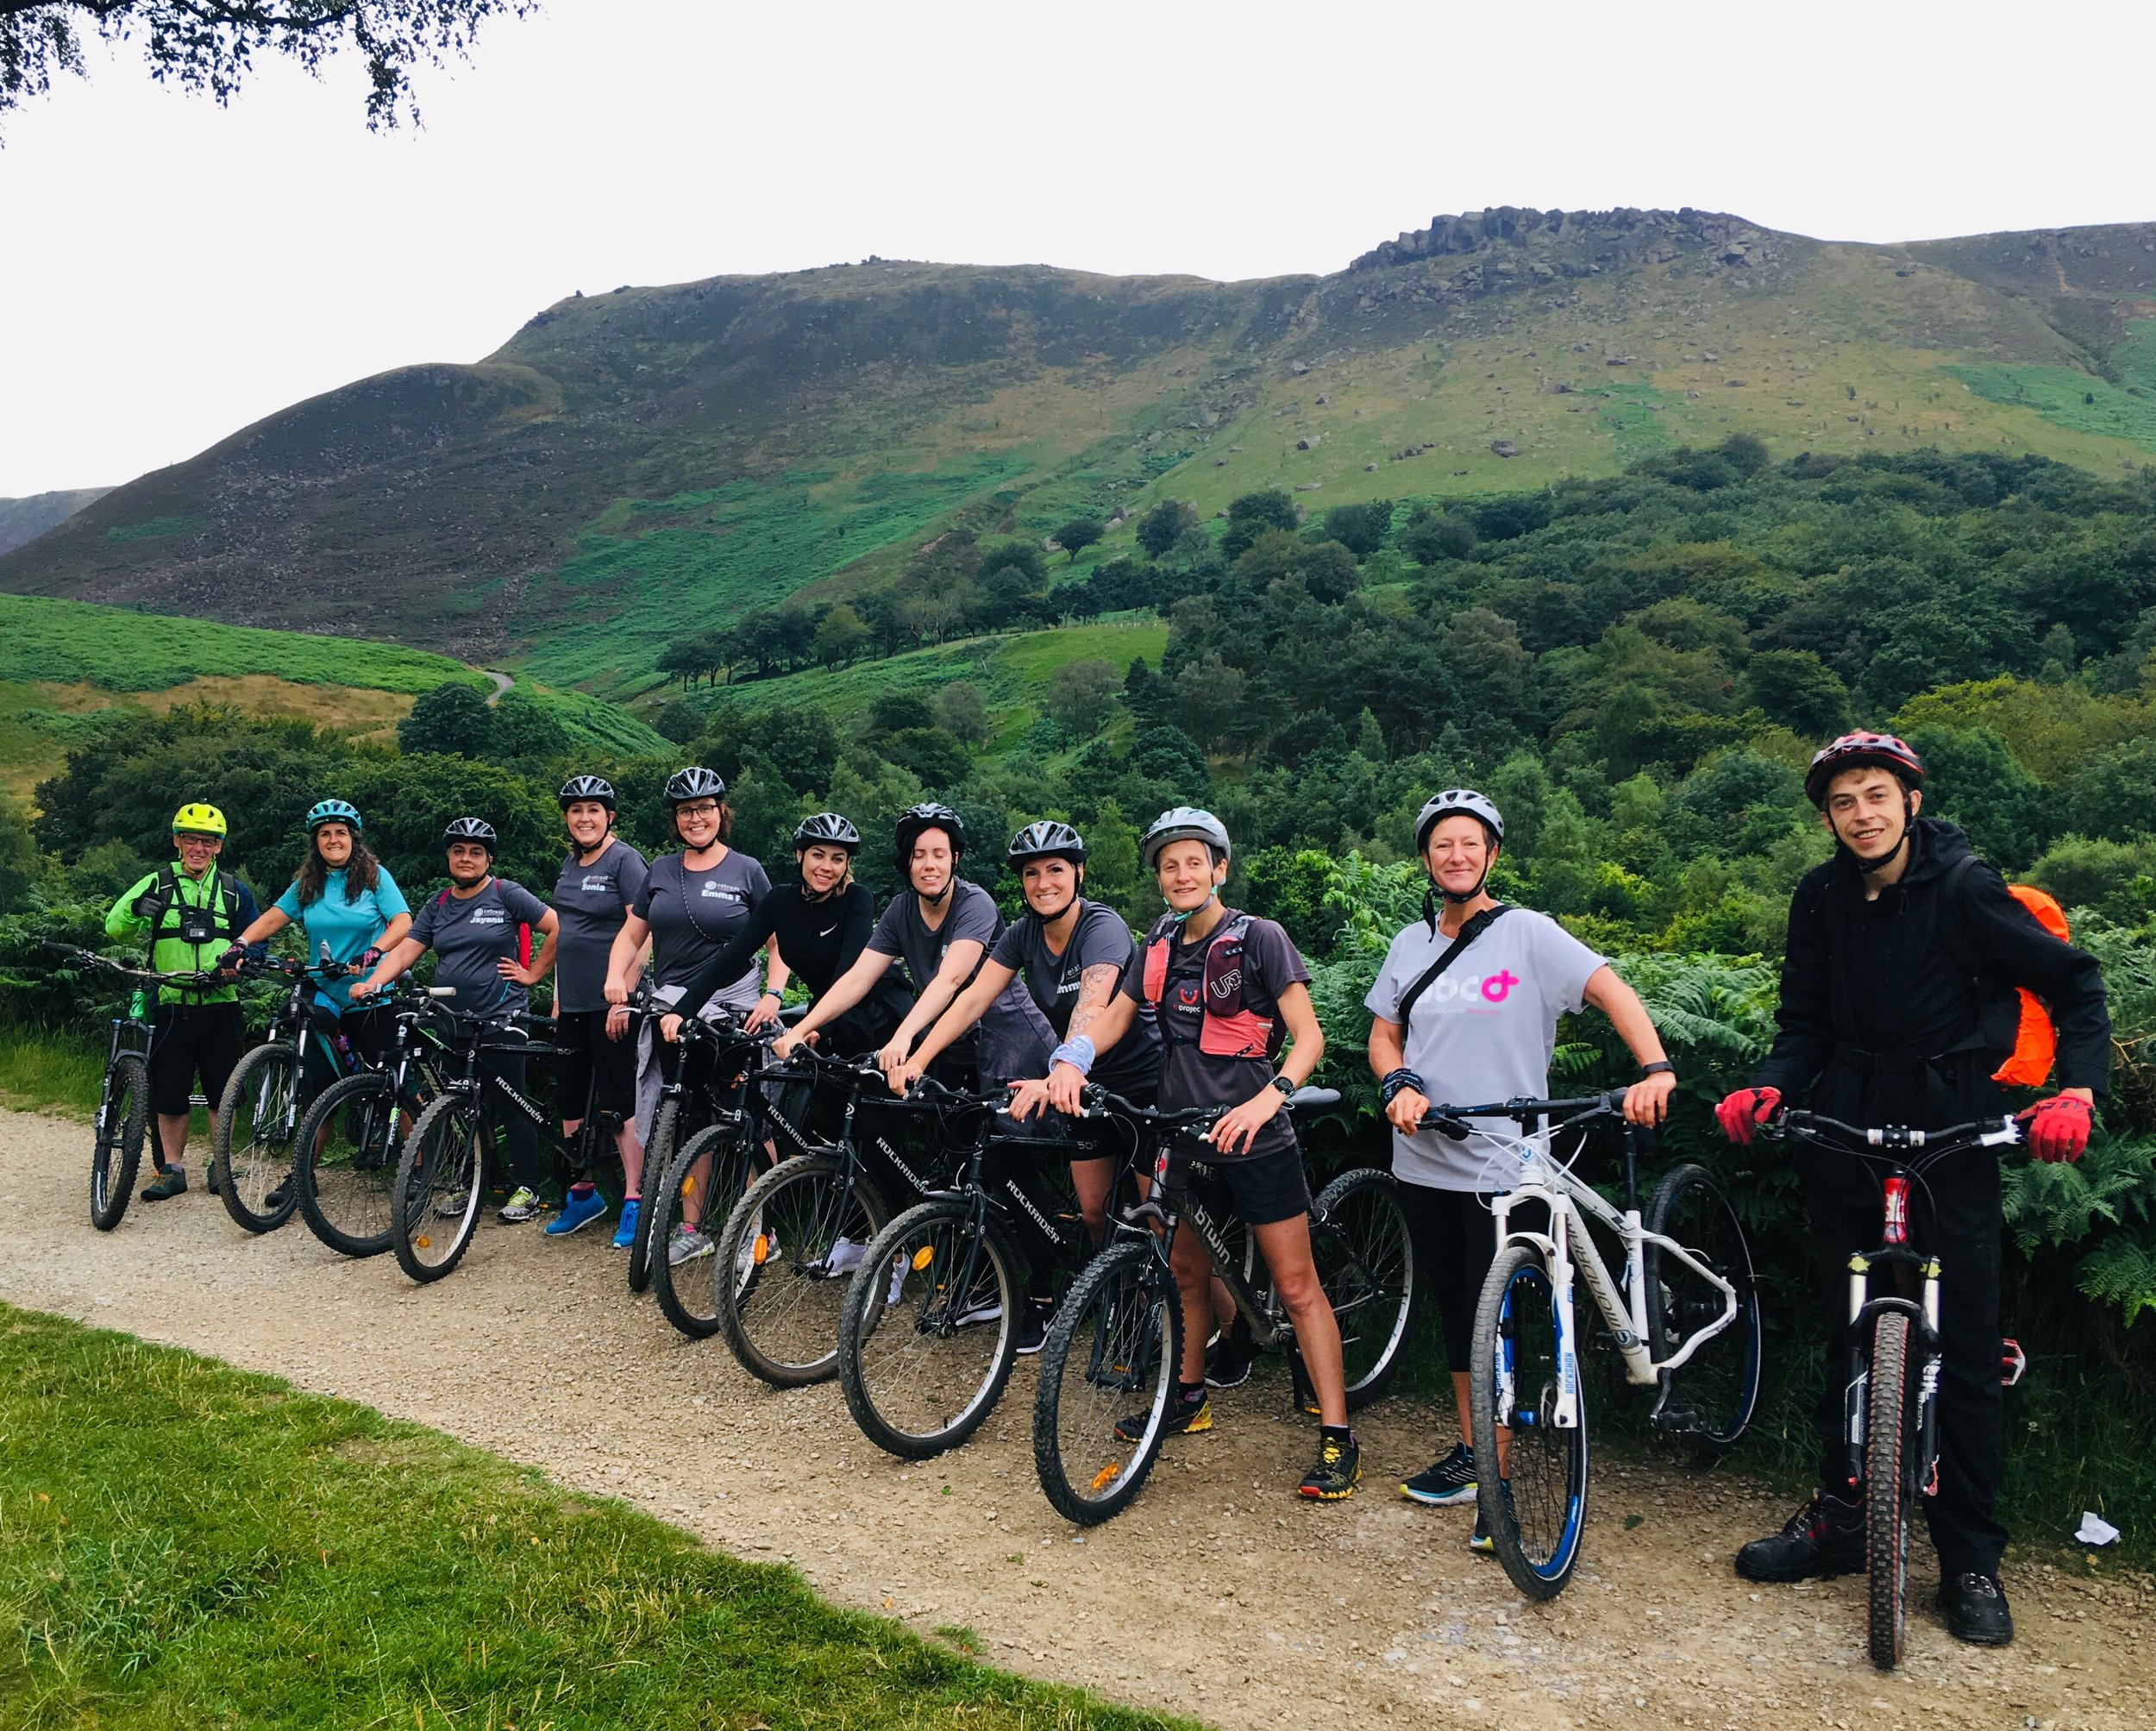 Cycle Group with 'Indians' Head in the background